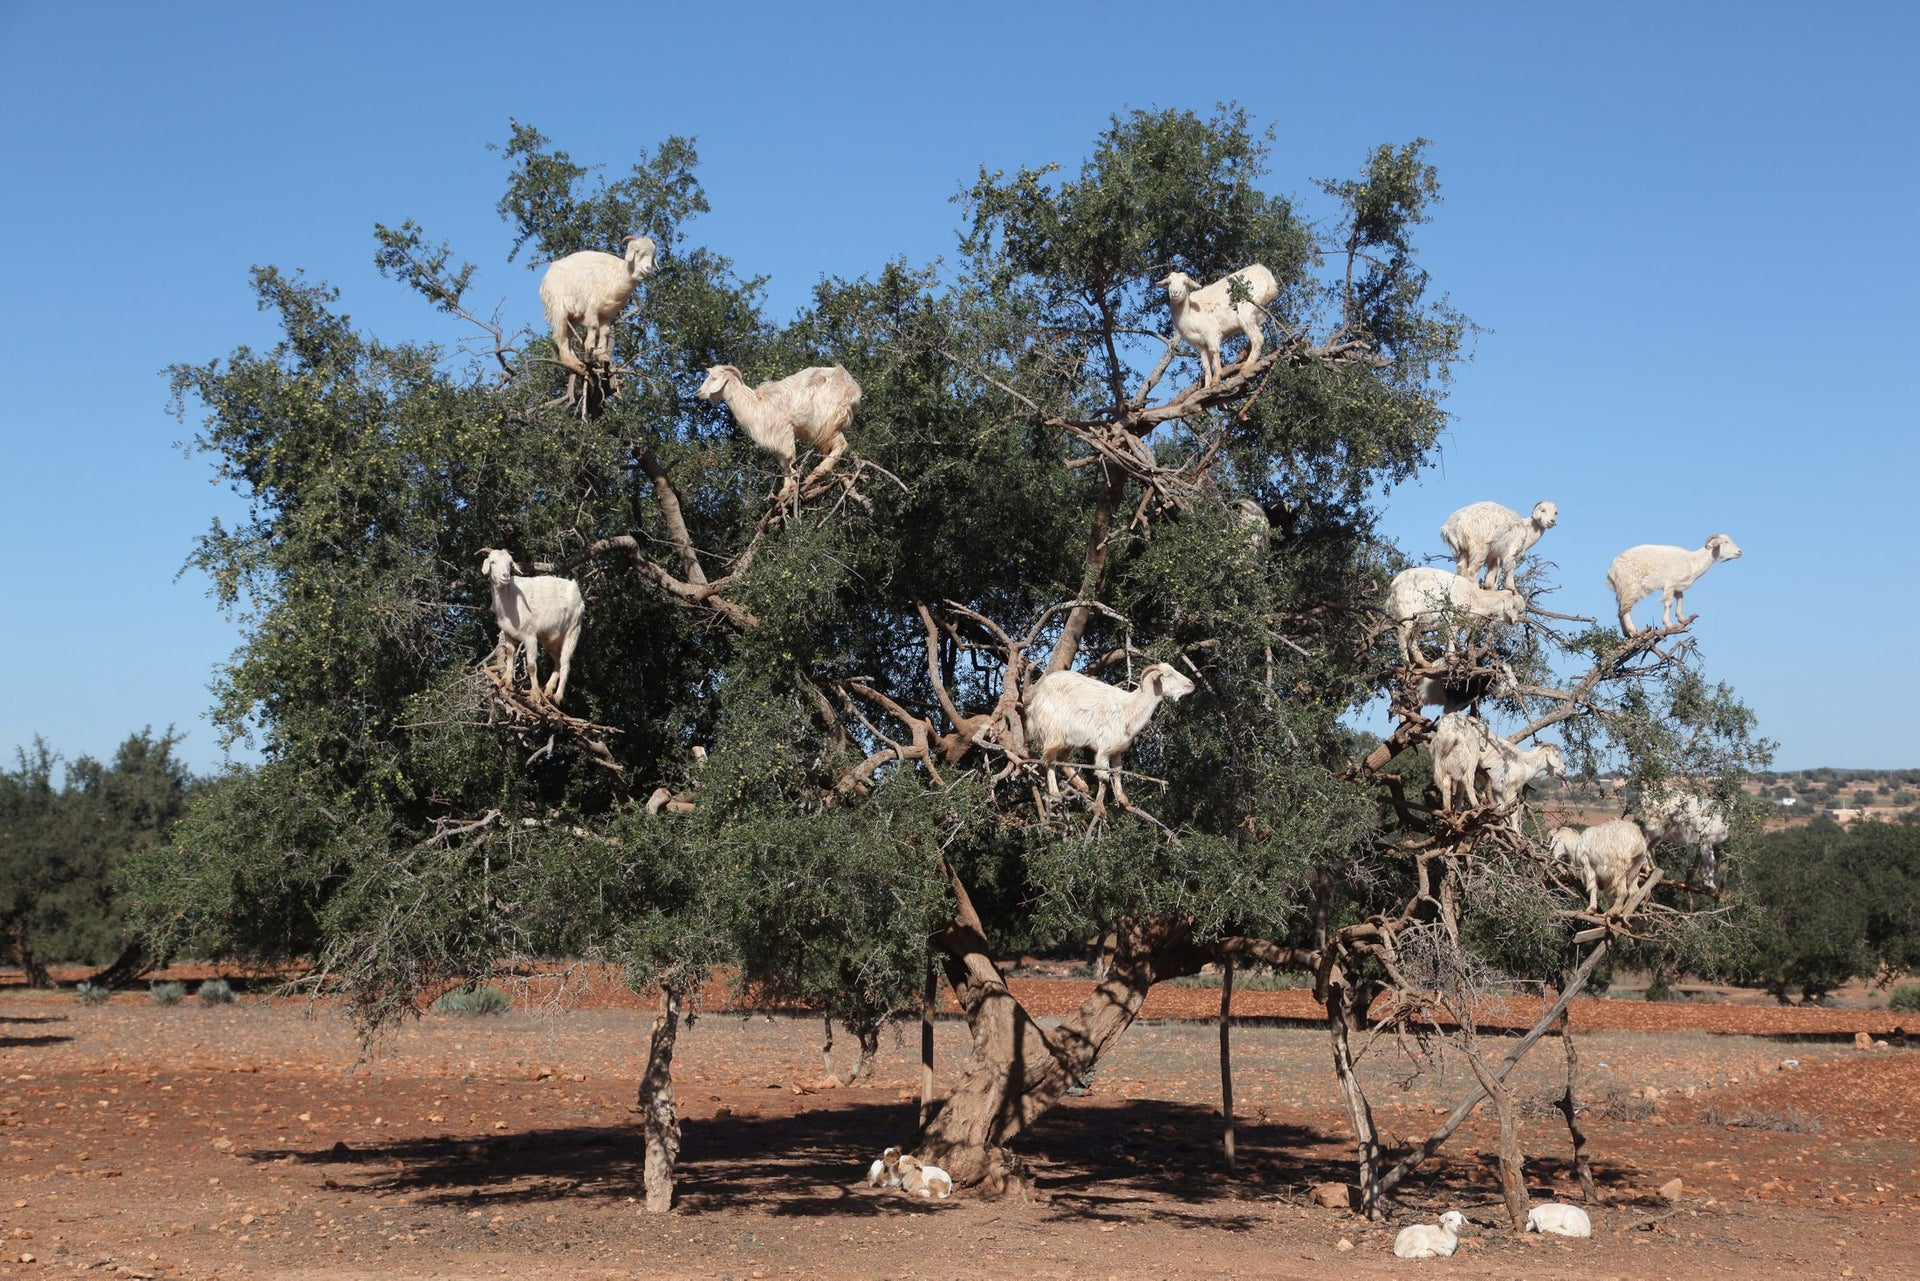 Tree climbing goats feeding in an argan tree, in Essaouria, Morocco, Africa, on 17 December 2016. picture shows at least 11 goats who had climbed an argan tree that looks to be about 25 feet high. On the brown stony soil ground, three more goats are sitting.